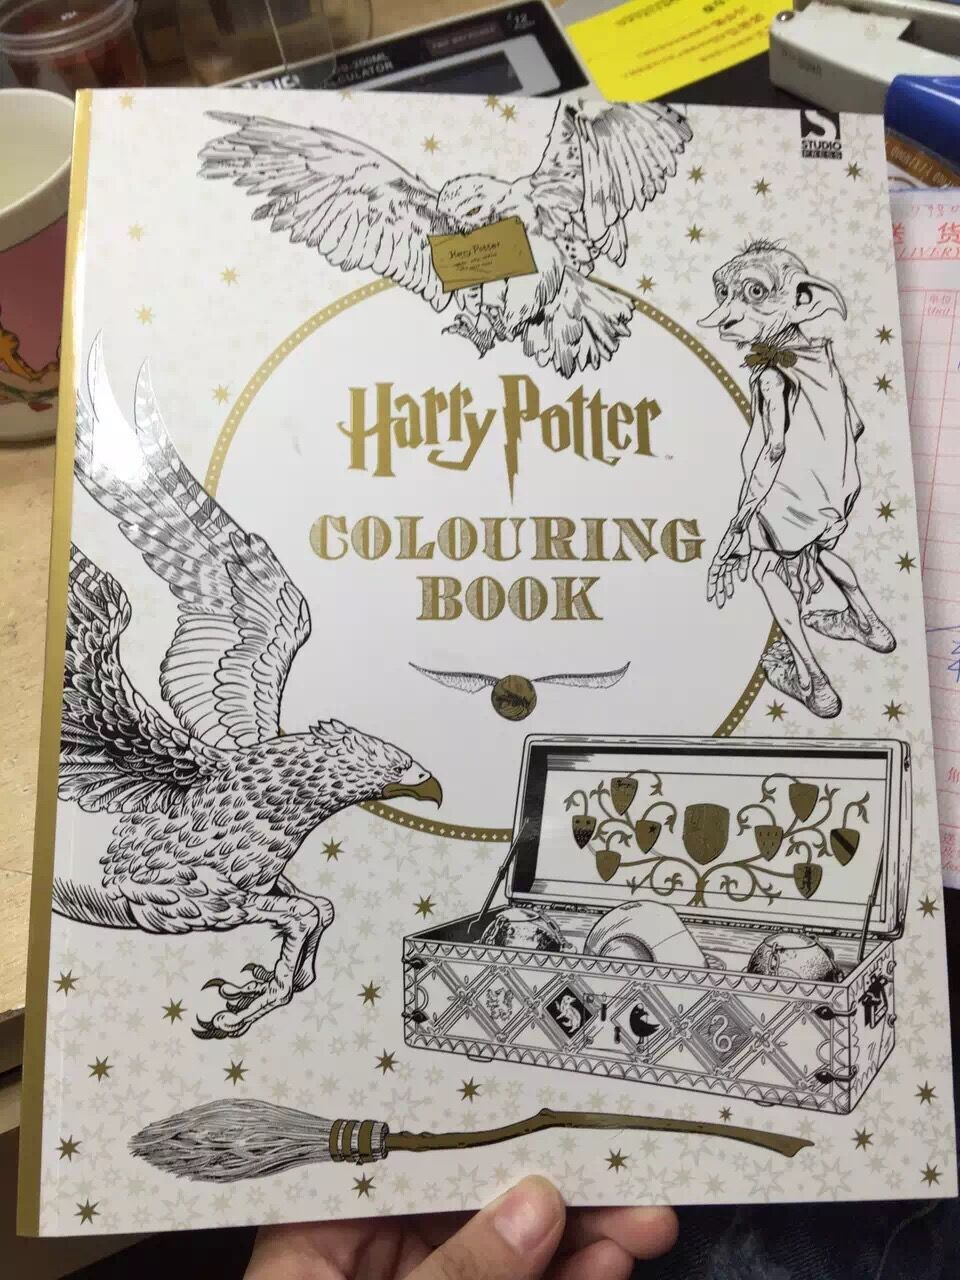 96pages Harry Potter Coloring Book Books For Children